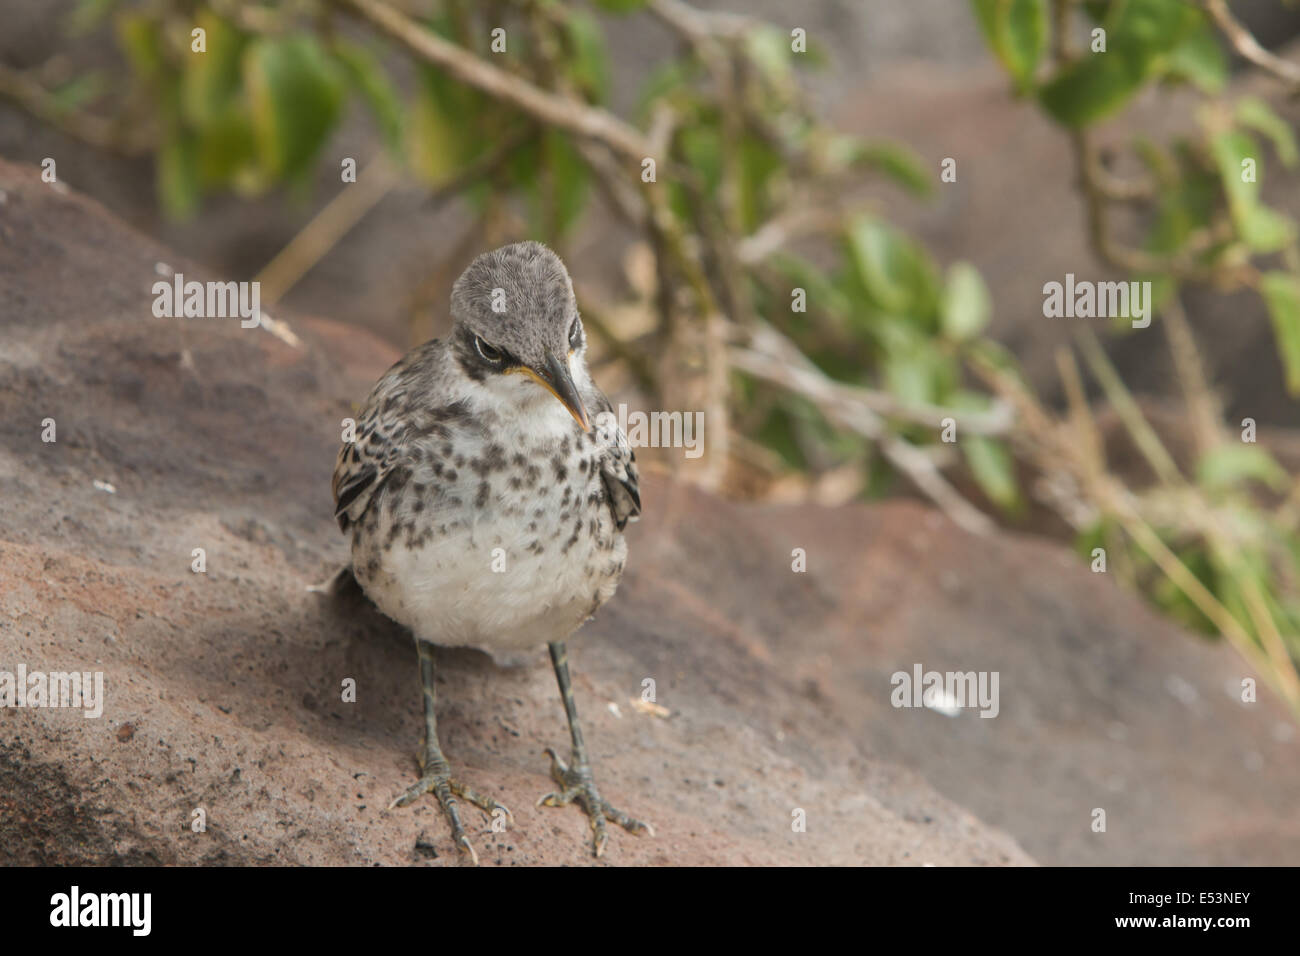 Ground Finch of the Galapagos Islands - Stock Image